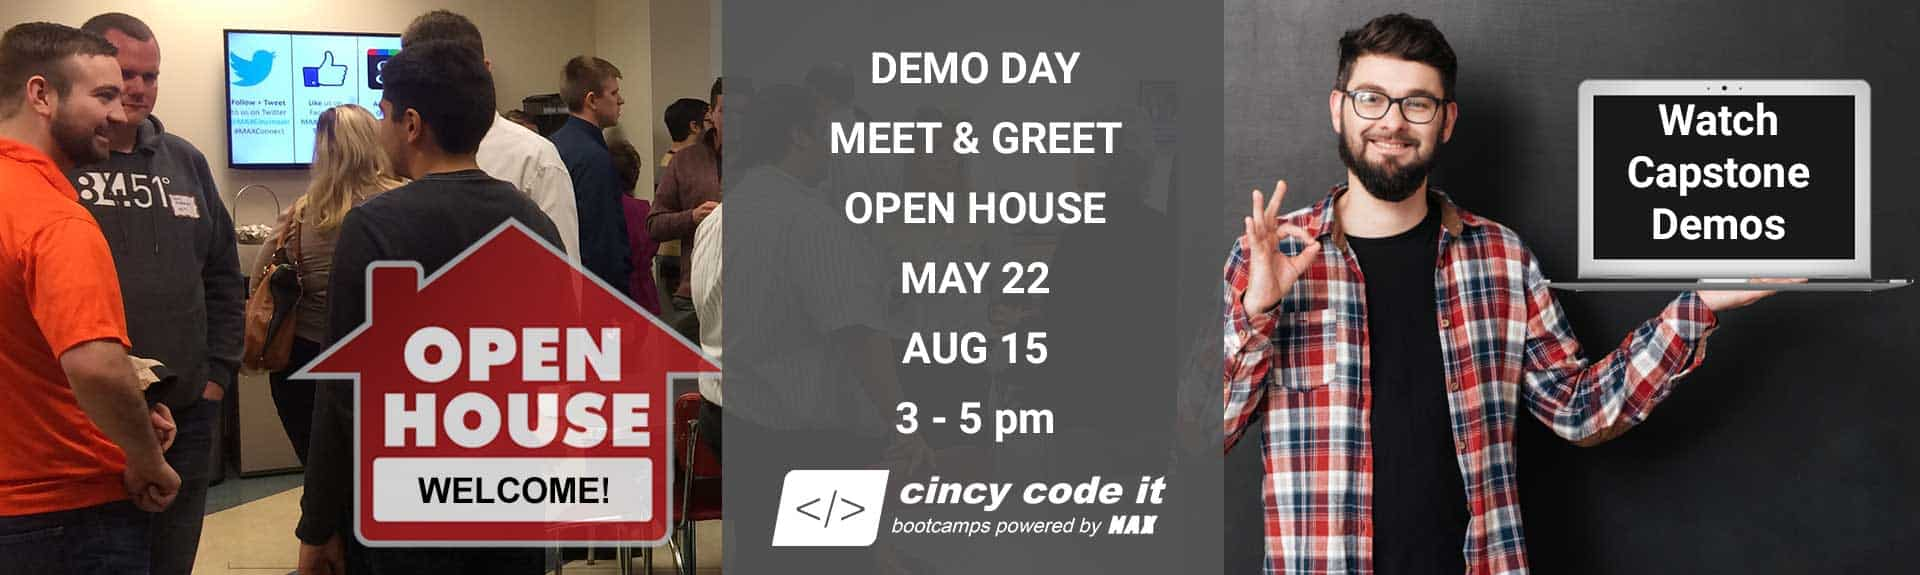 Open House - Java Coding Bootcamp and .NET Coding Bootcamp - MAX Technical Training_Cincy Code IT